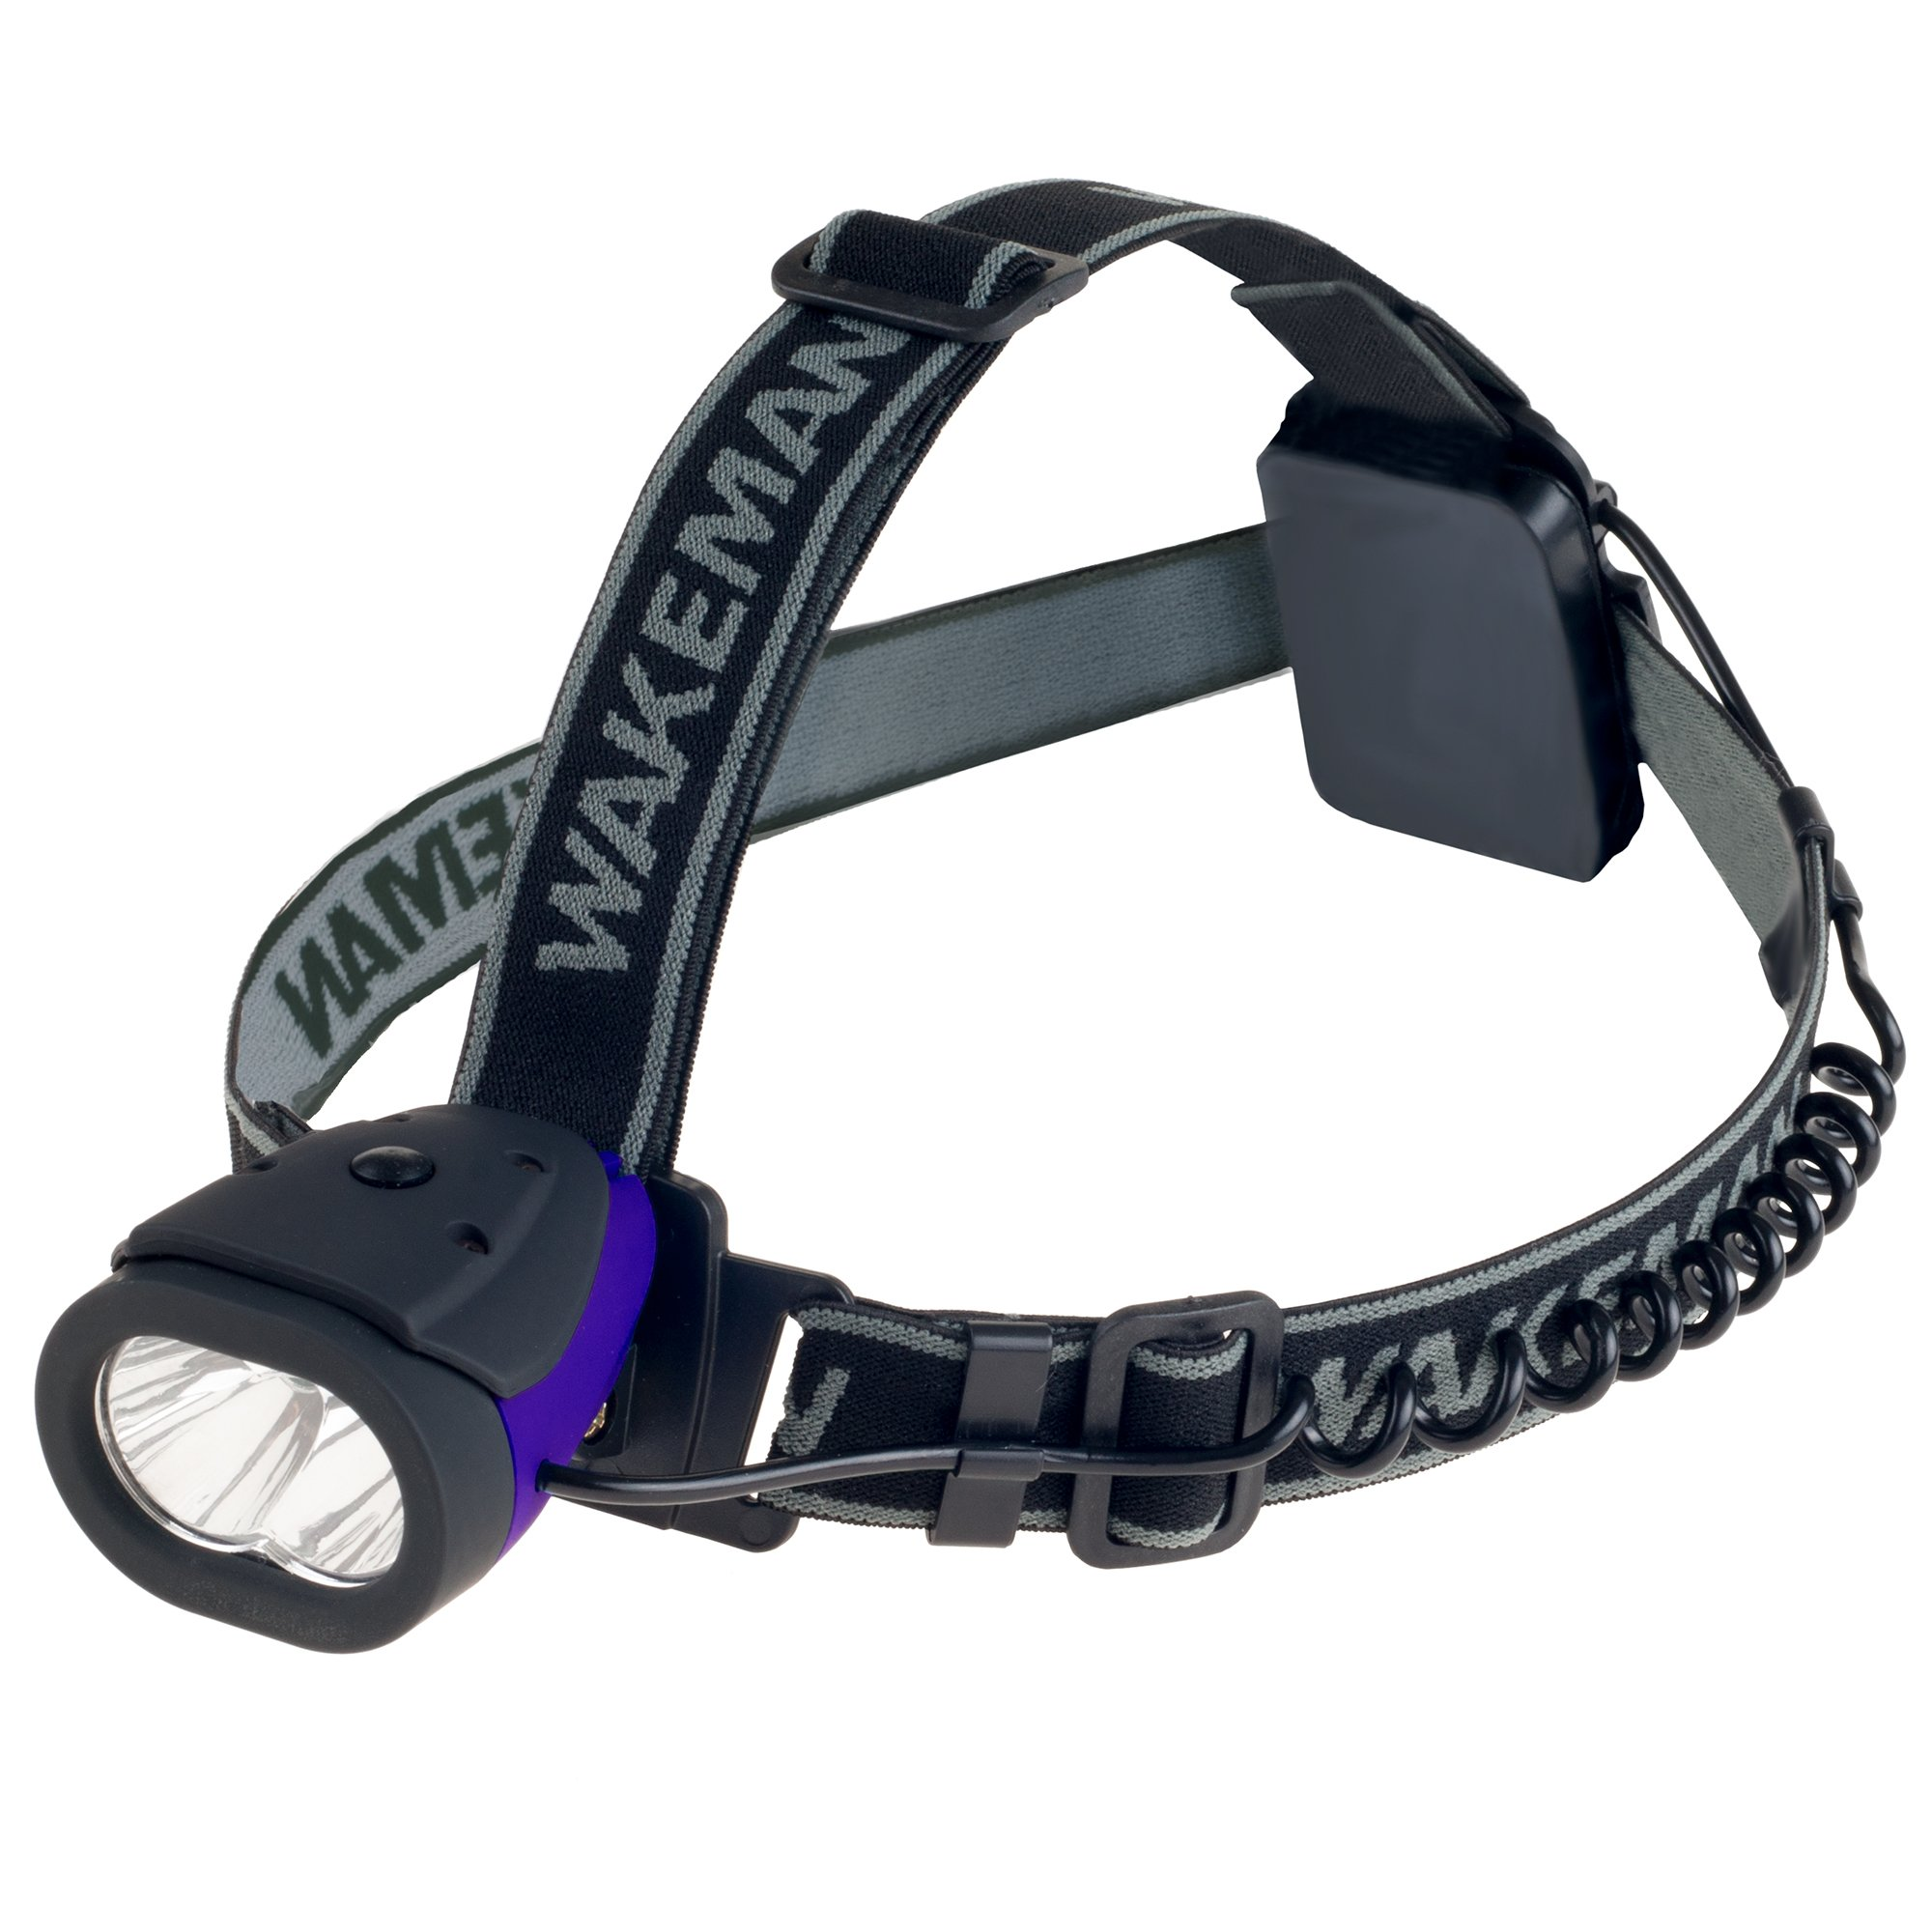 LED Headlamp Water Resistant Hands Free Light with 160 Lumen and 2 SMD by Wakeman Outdoors (Blue)